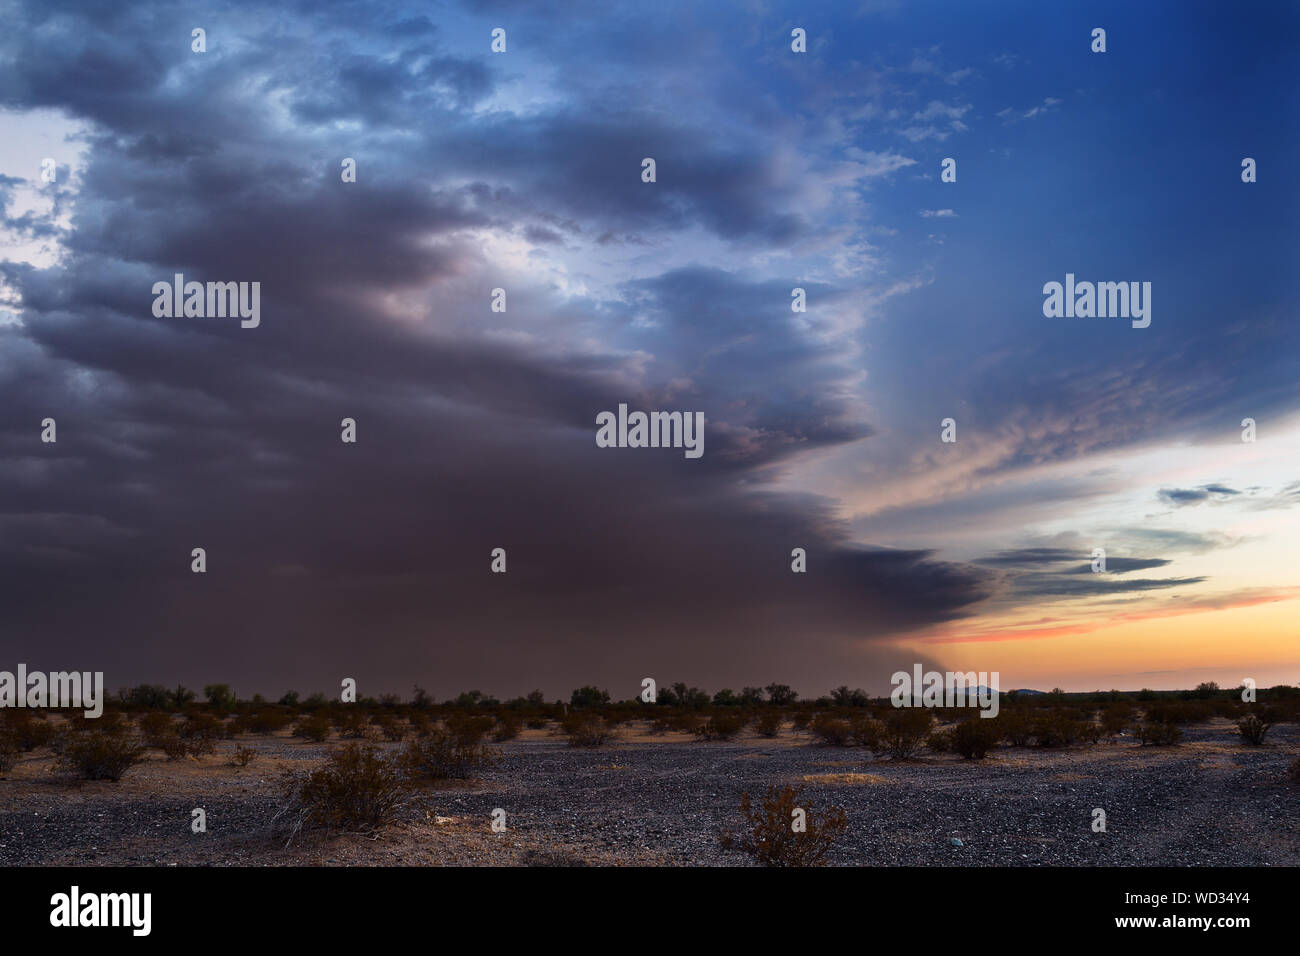 Scenic View Of Sonoran Desert Against Cloudy Sky During Sunset Stock Photo